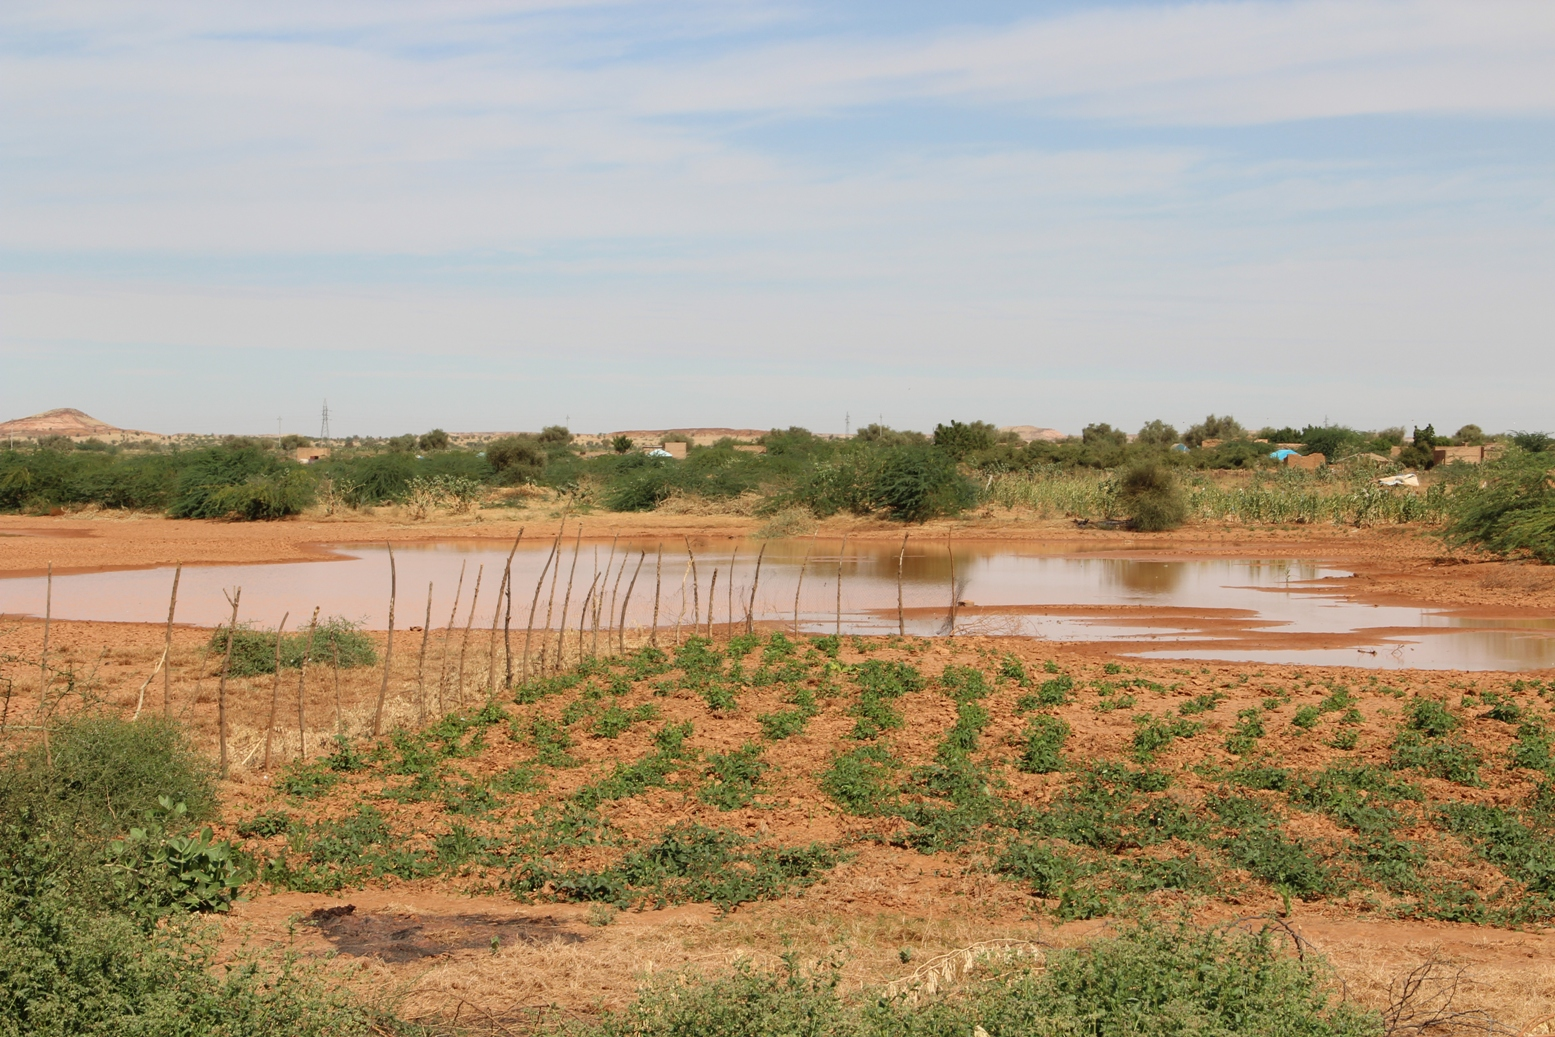 As of end of 2012 the harvest in Mauritania was far better than 2011 due to decent rains. Fields outside of Kaedi in the Gorgol region